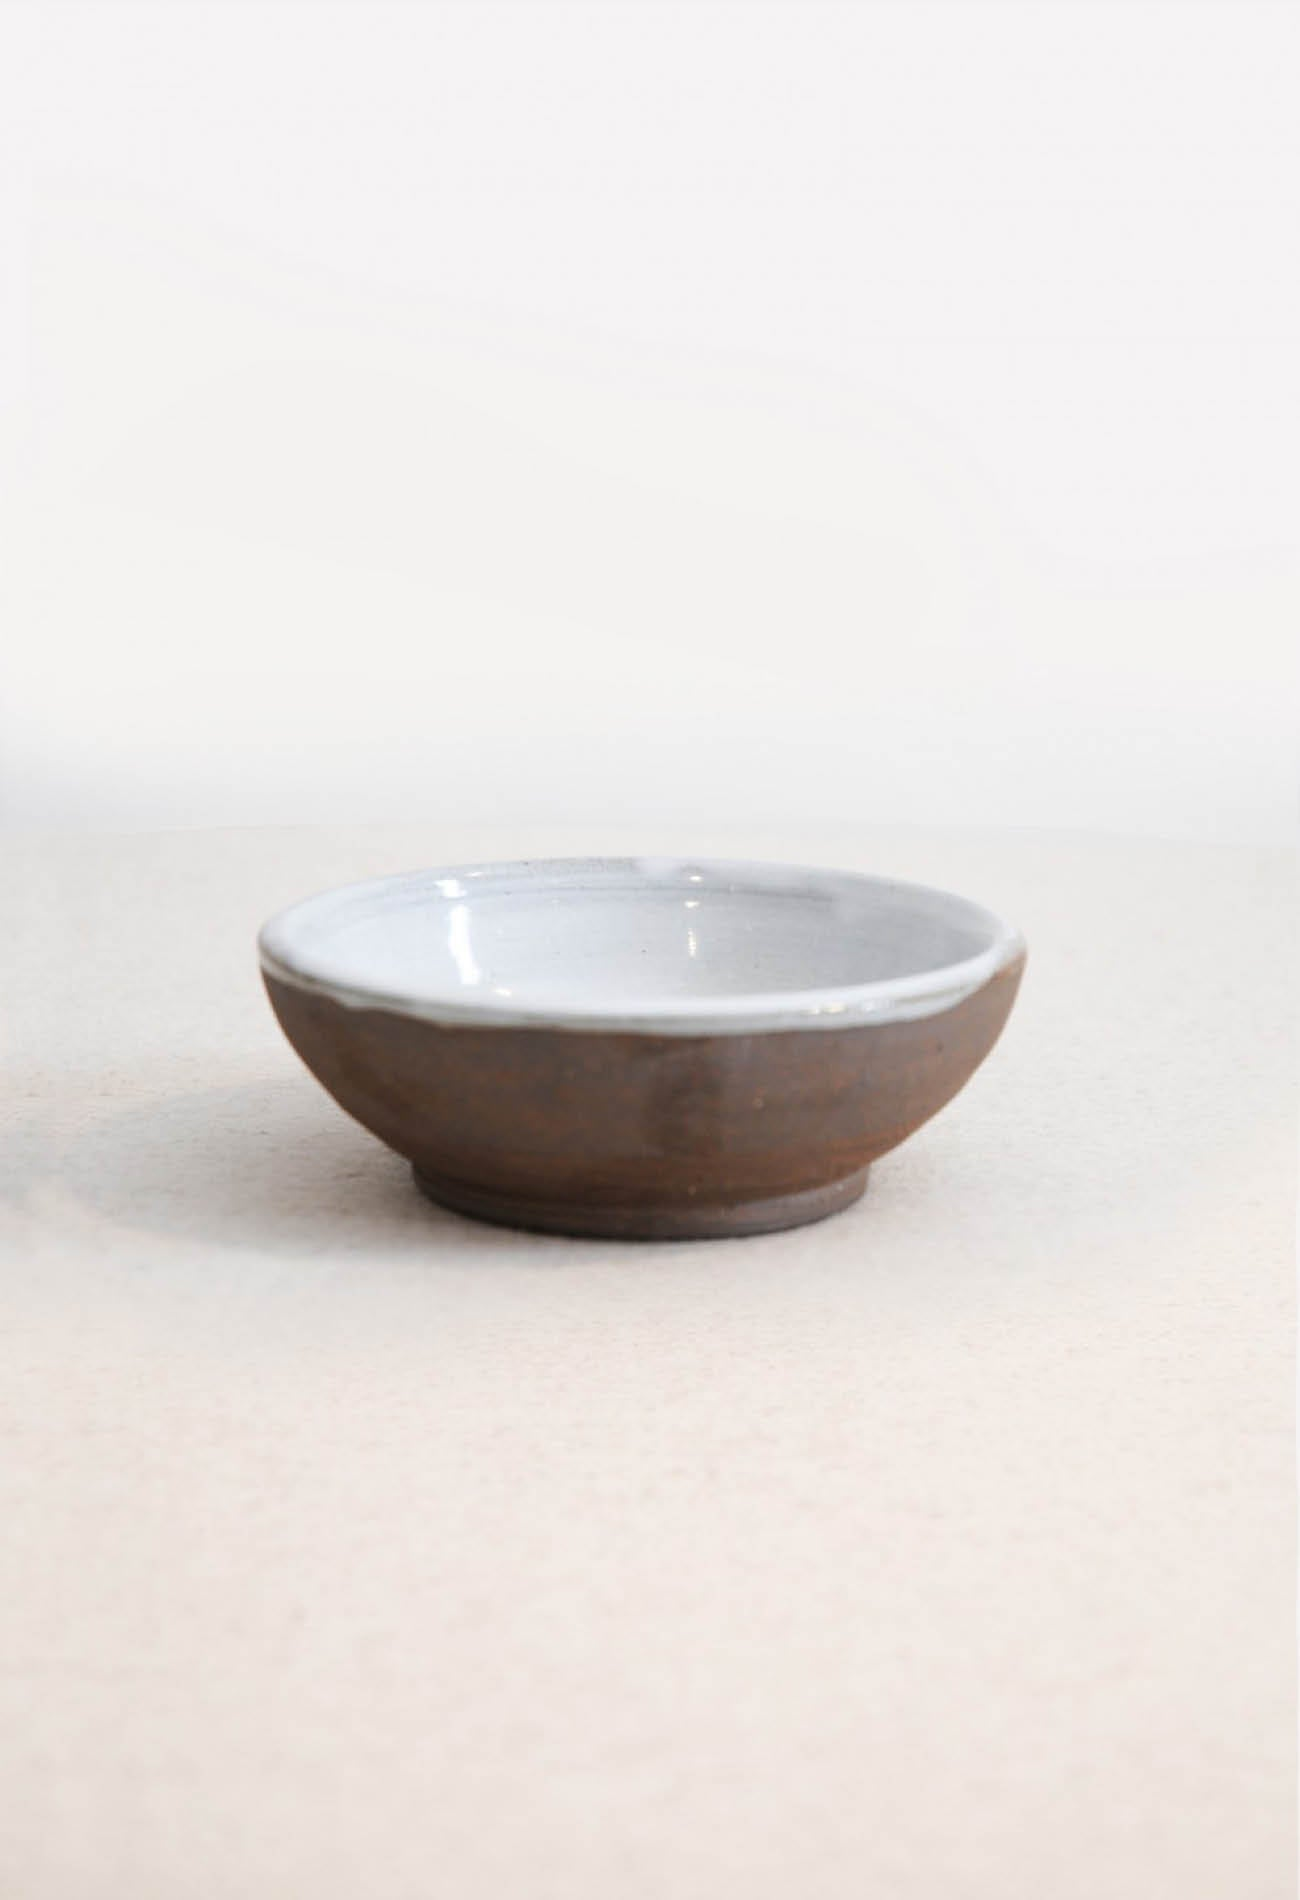 Small bowl - Ghesq